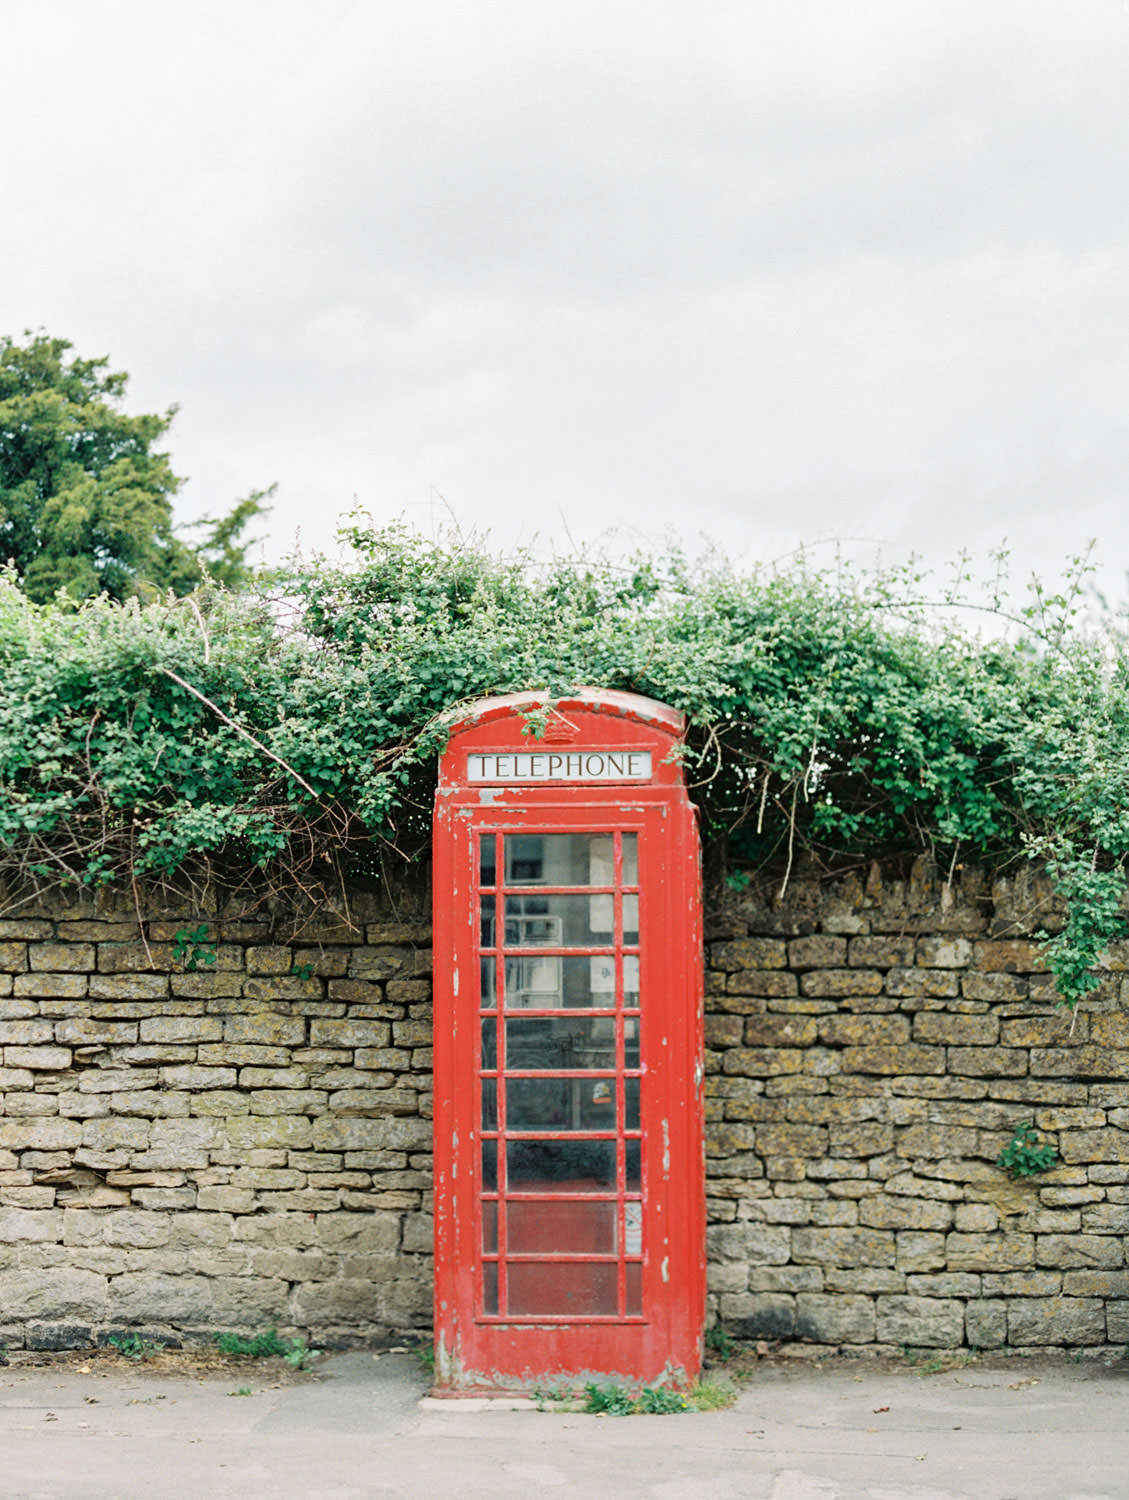 Lacock village red telephone booth in England, Cavin Elizabeth Photography